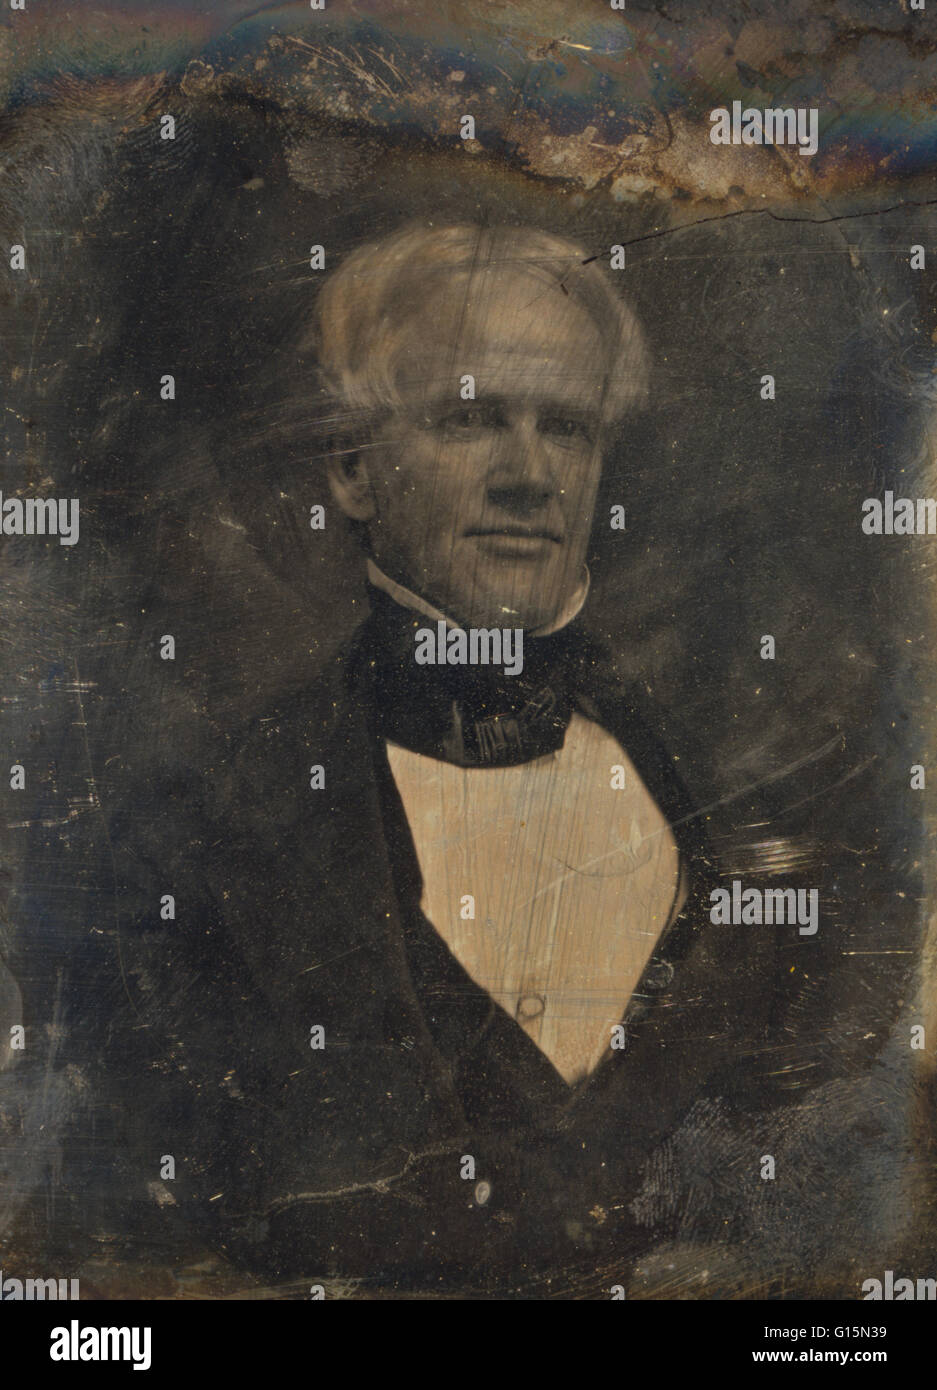 Horace Mann (May 4, 1796 - August 2, 1859) was an American education reformer. As a politician he served in the - Stock Image